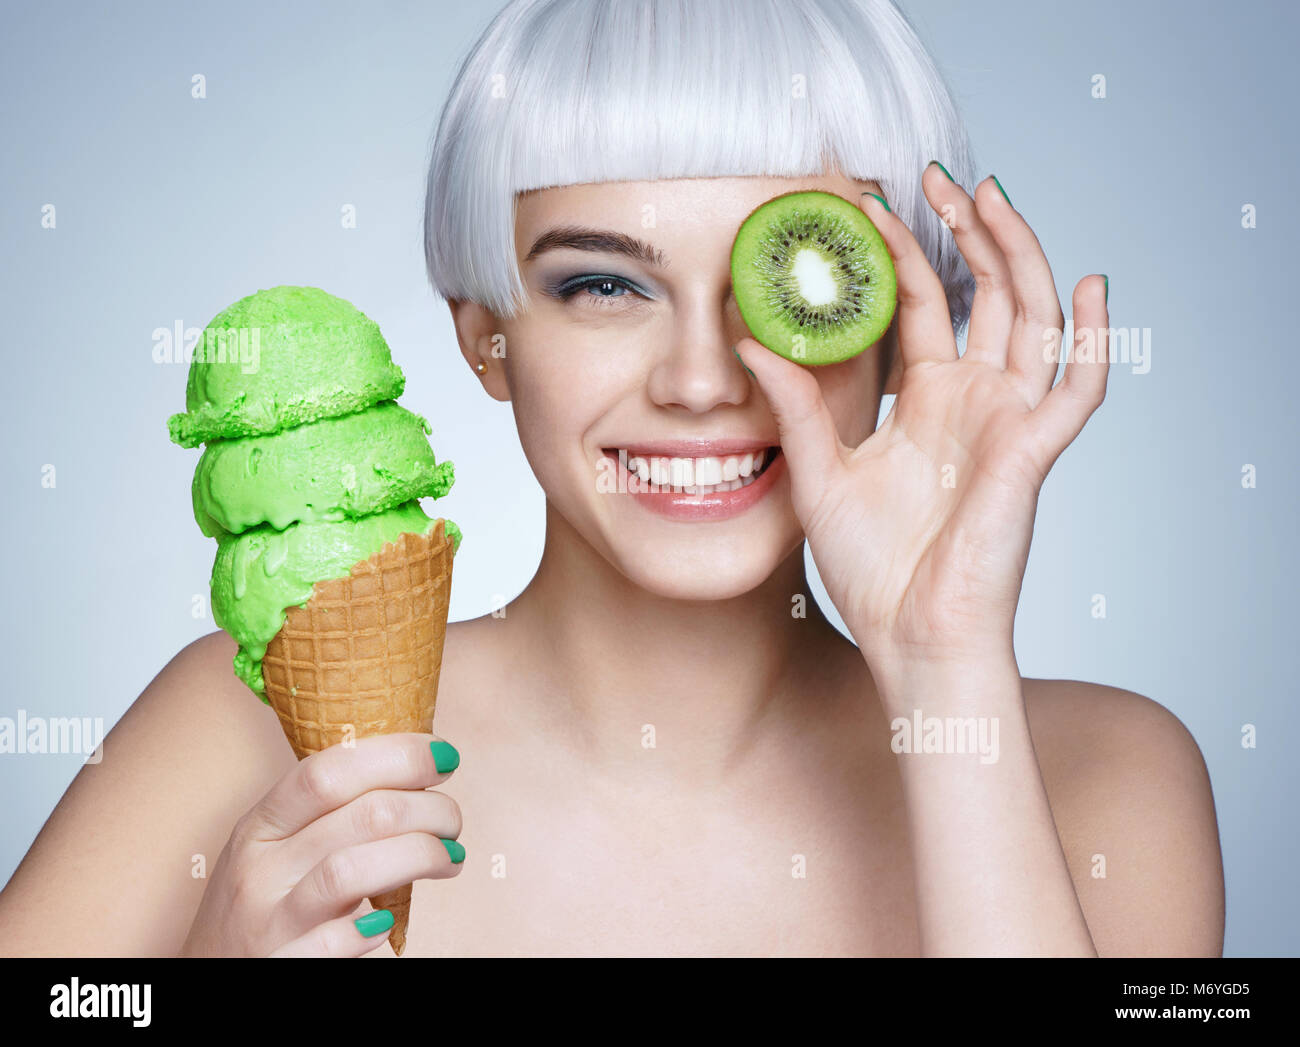 567e7beec03d Funny young girl holding waffle cone with ice cream and kiwi fruit. Photo  of smiling